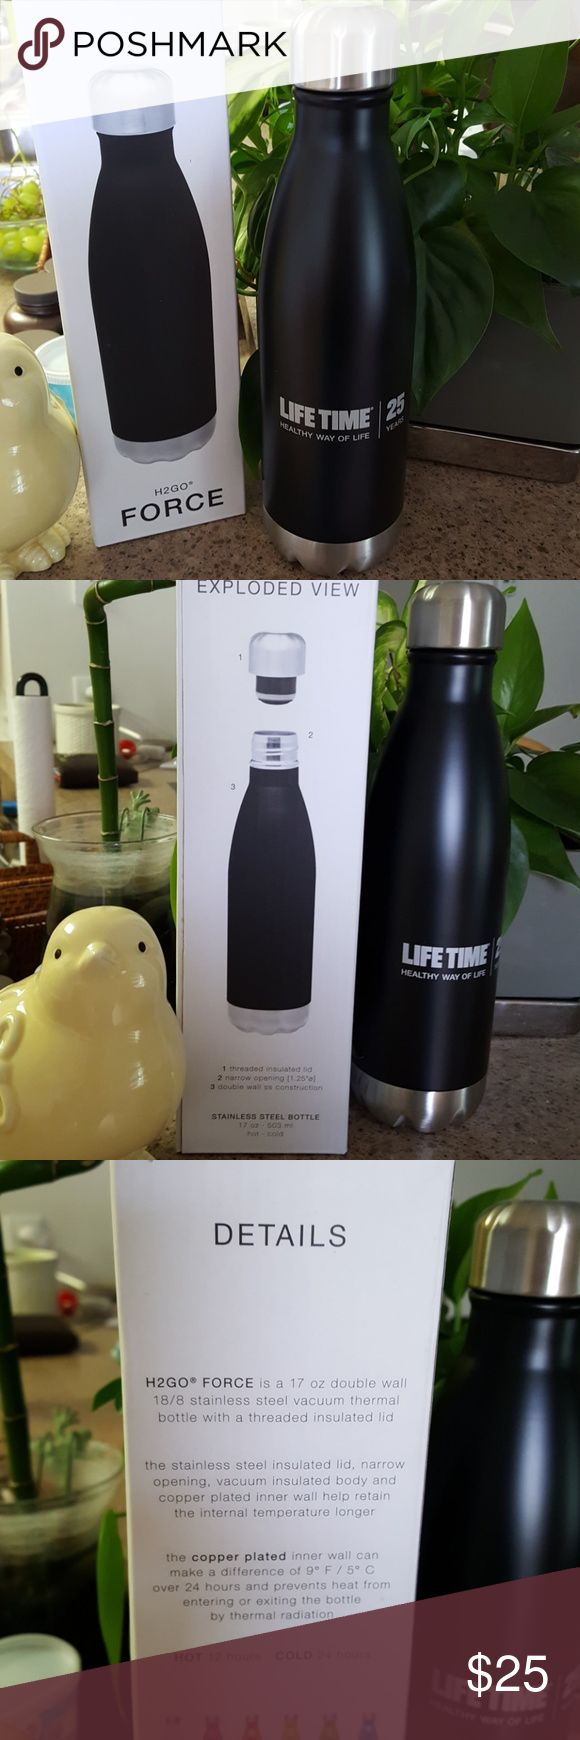 H2GO Force bottle Brand new and only taken out of box for pictures. This amazing bottle is for Lifetime Fitness members as a special membership gift. Holds 17 oz. Logo on one side. Black bottle with silver bottom and cap.  Its a double wall stainless steel vacuum thermal bottle with threaded insulated lid. Amazing addition to your daily health. Lifetime Other